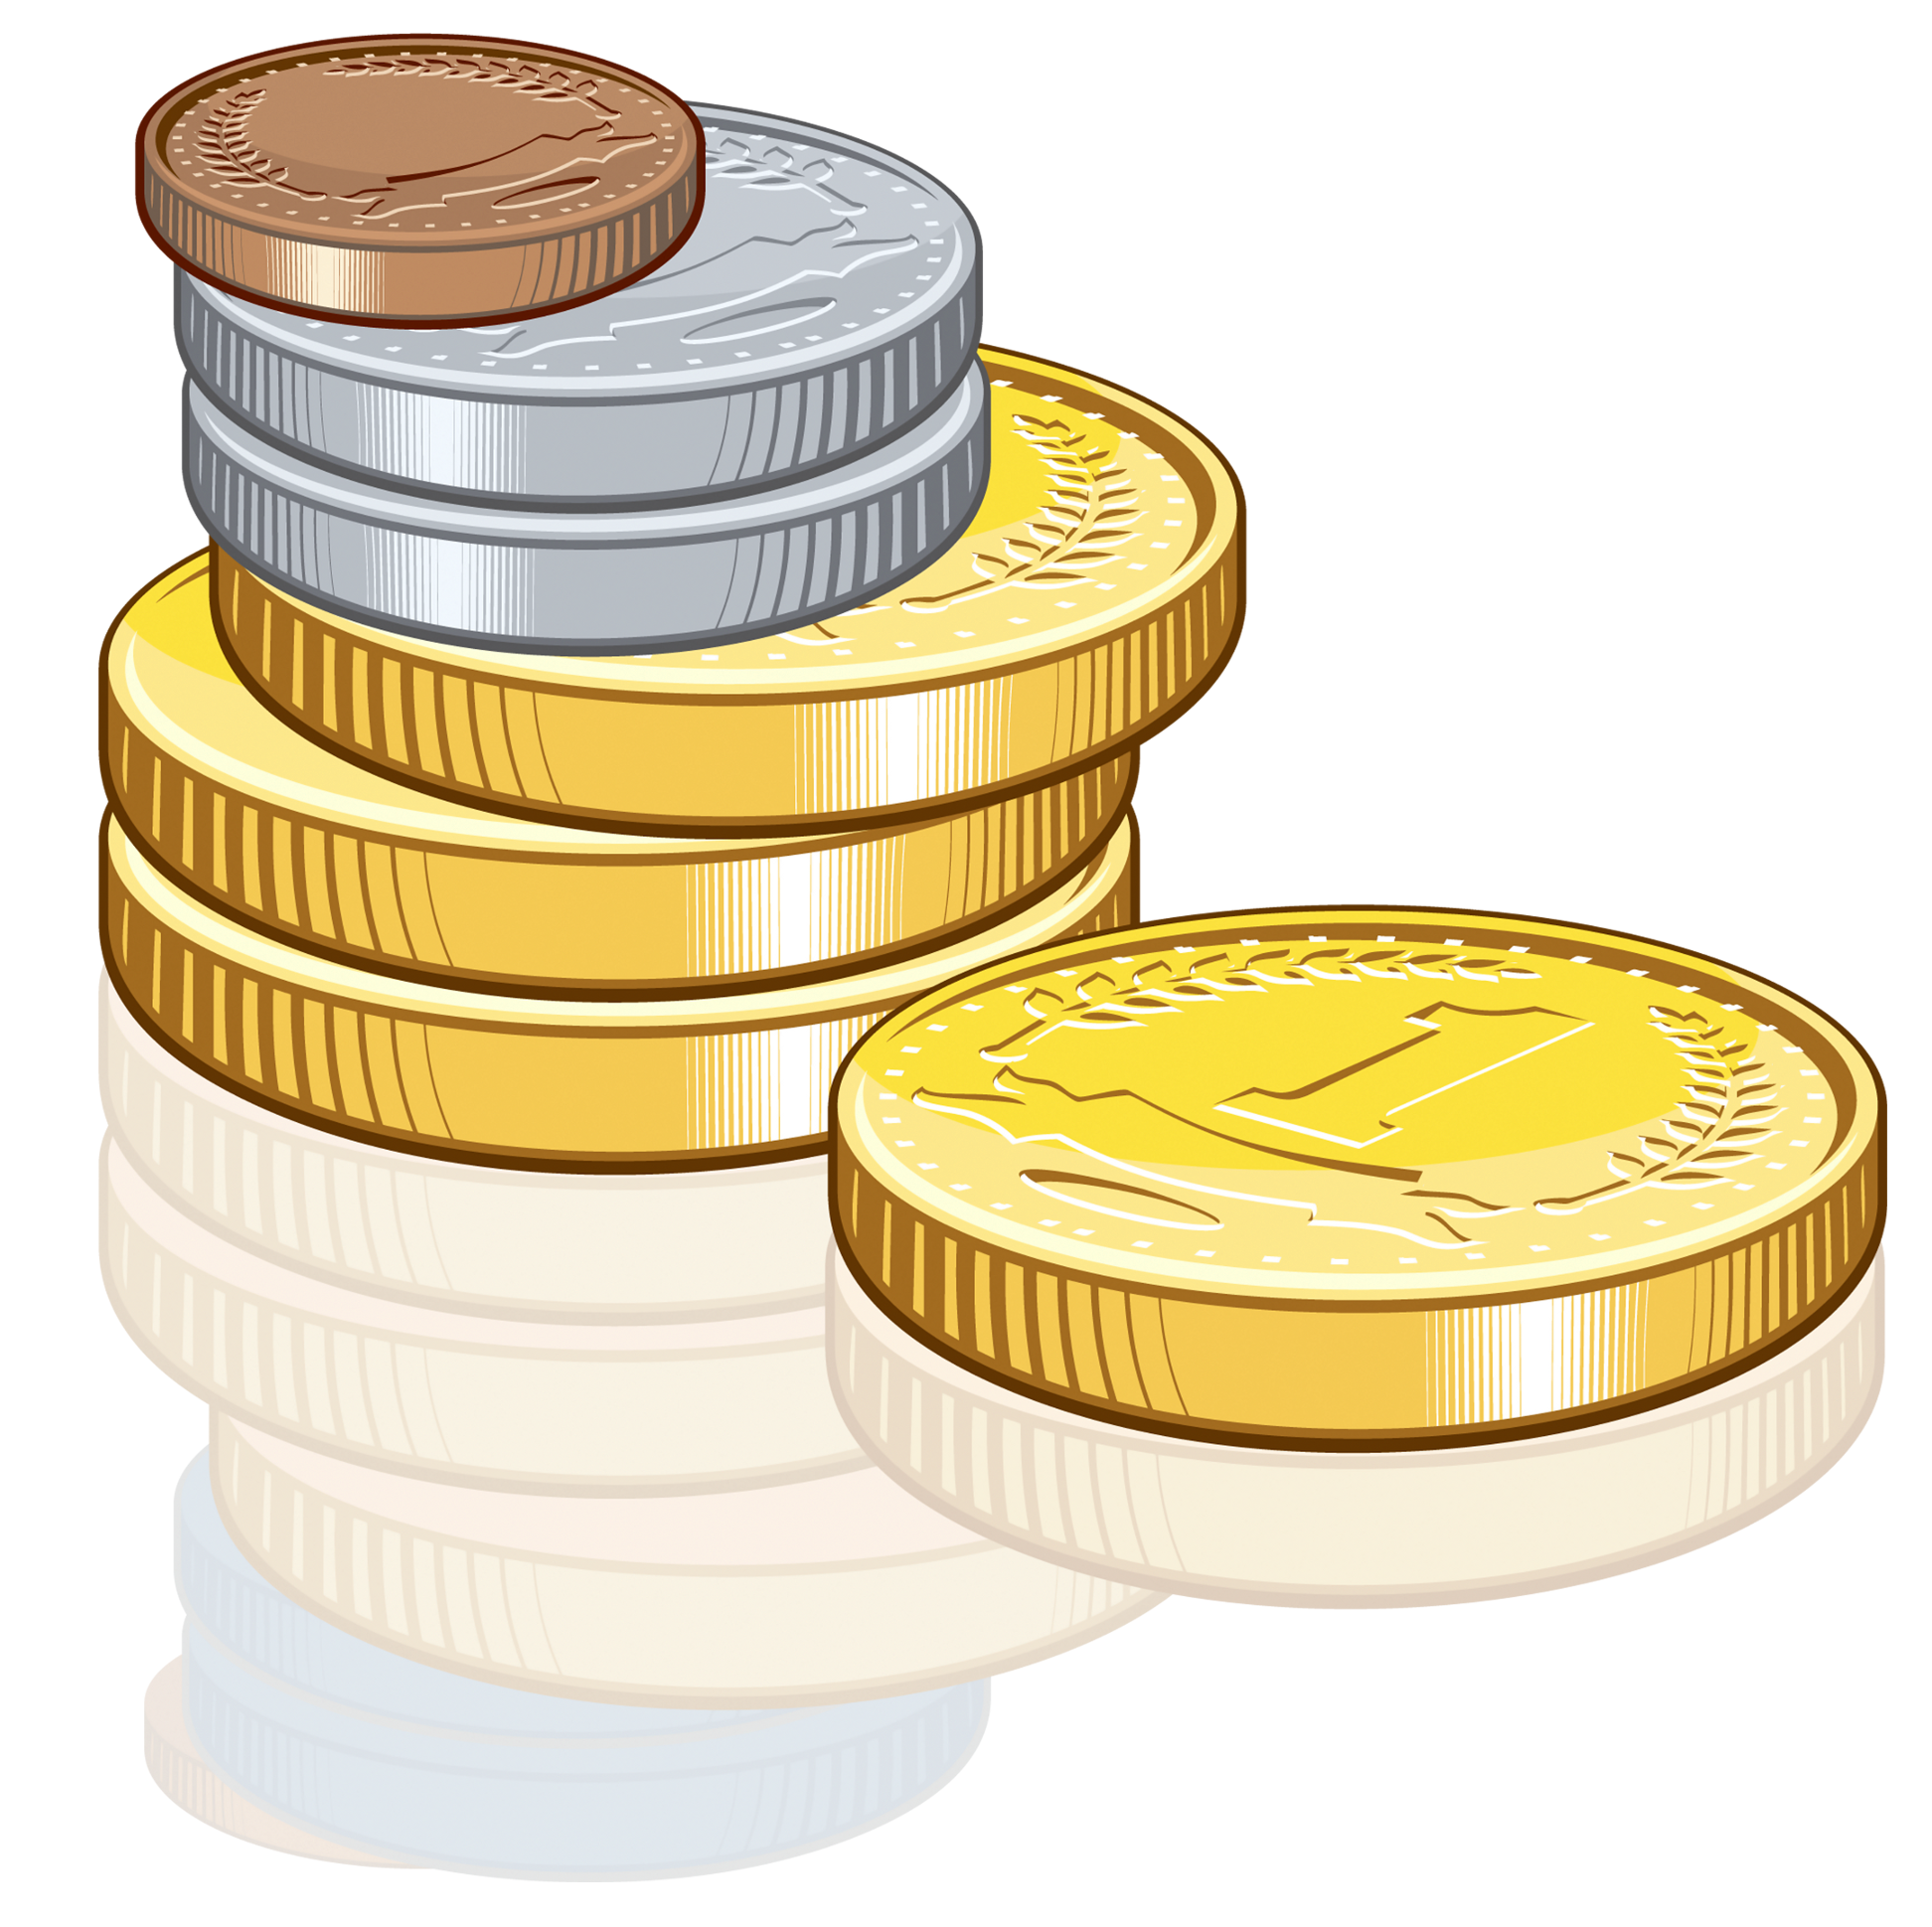 Money coins clipart - Clipground